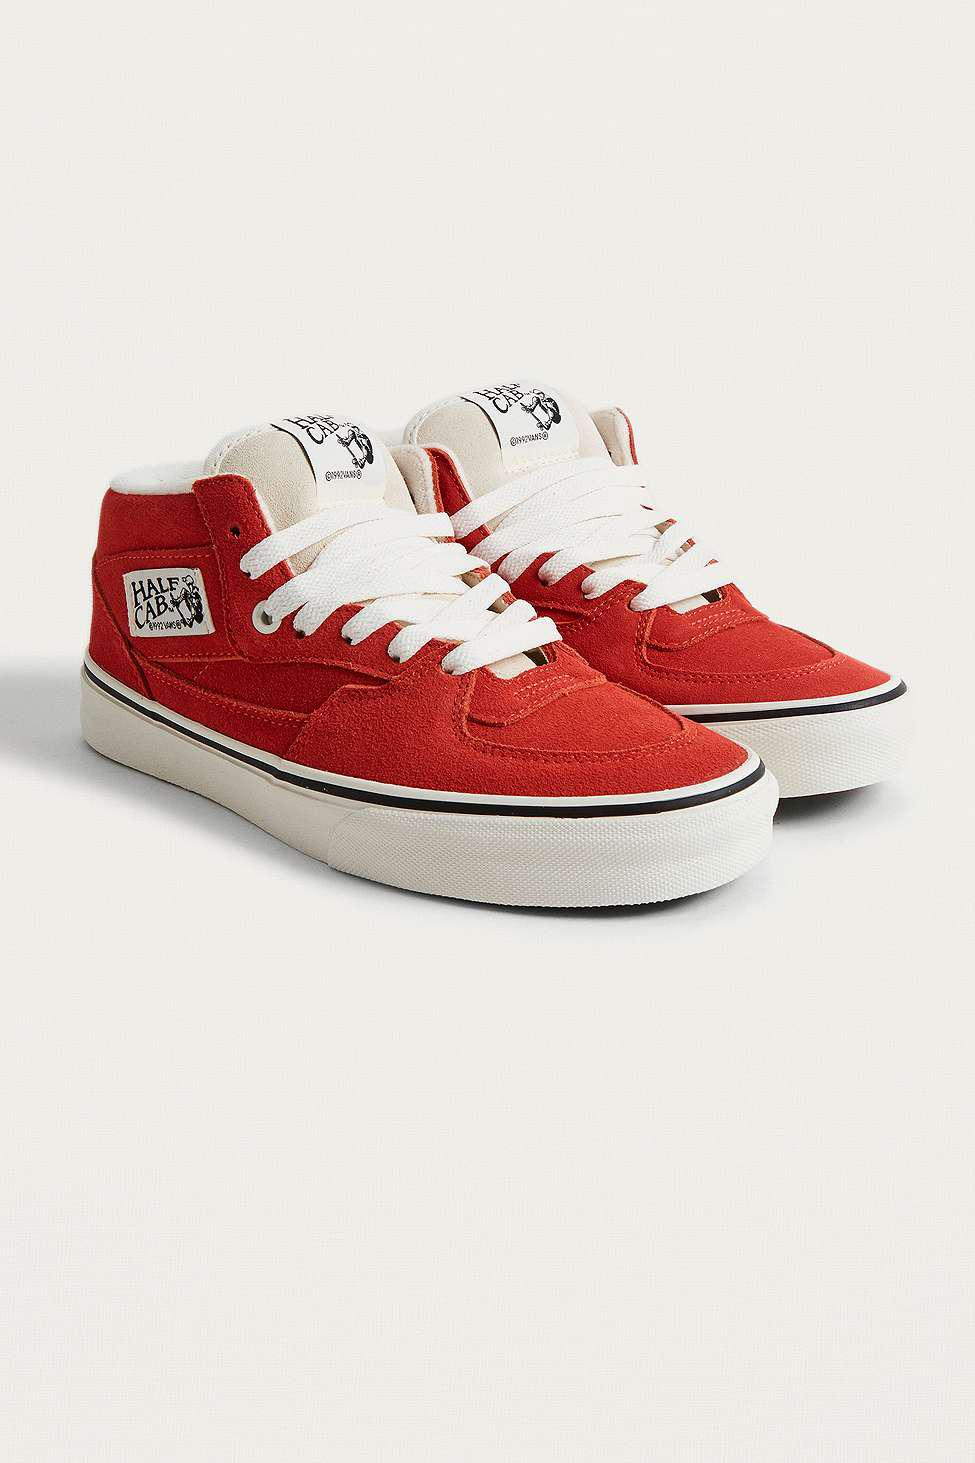 d3e7bcfc21fe Vans Half Cab Hibiscus Trainers - Womens Uk 4 in Red - Lyst